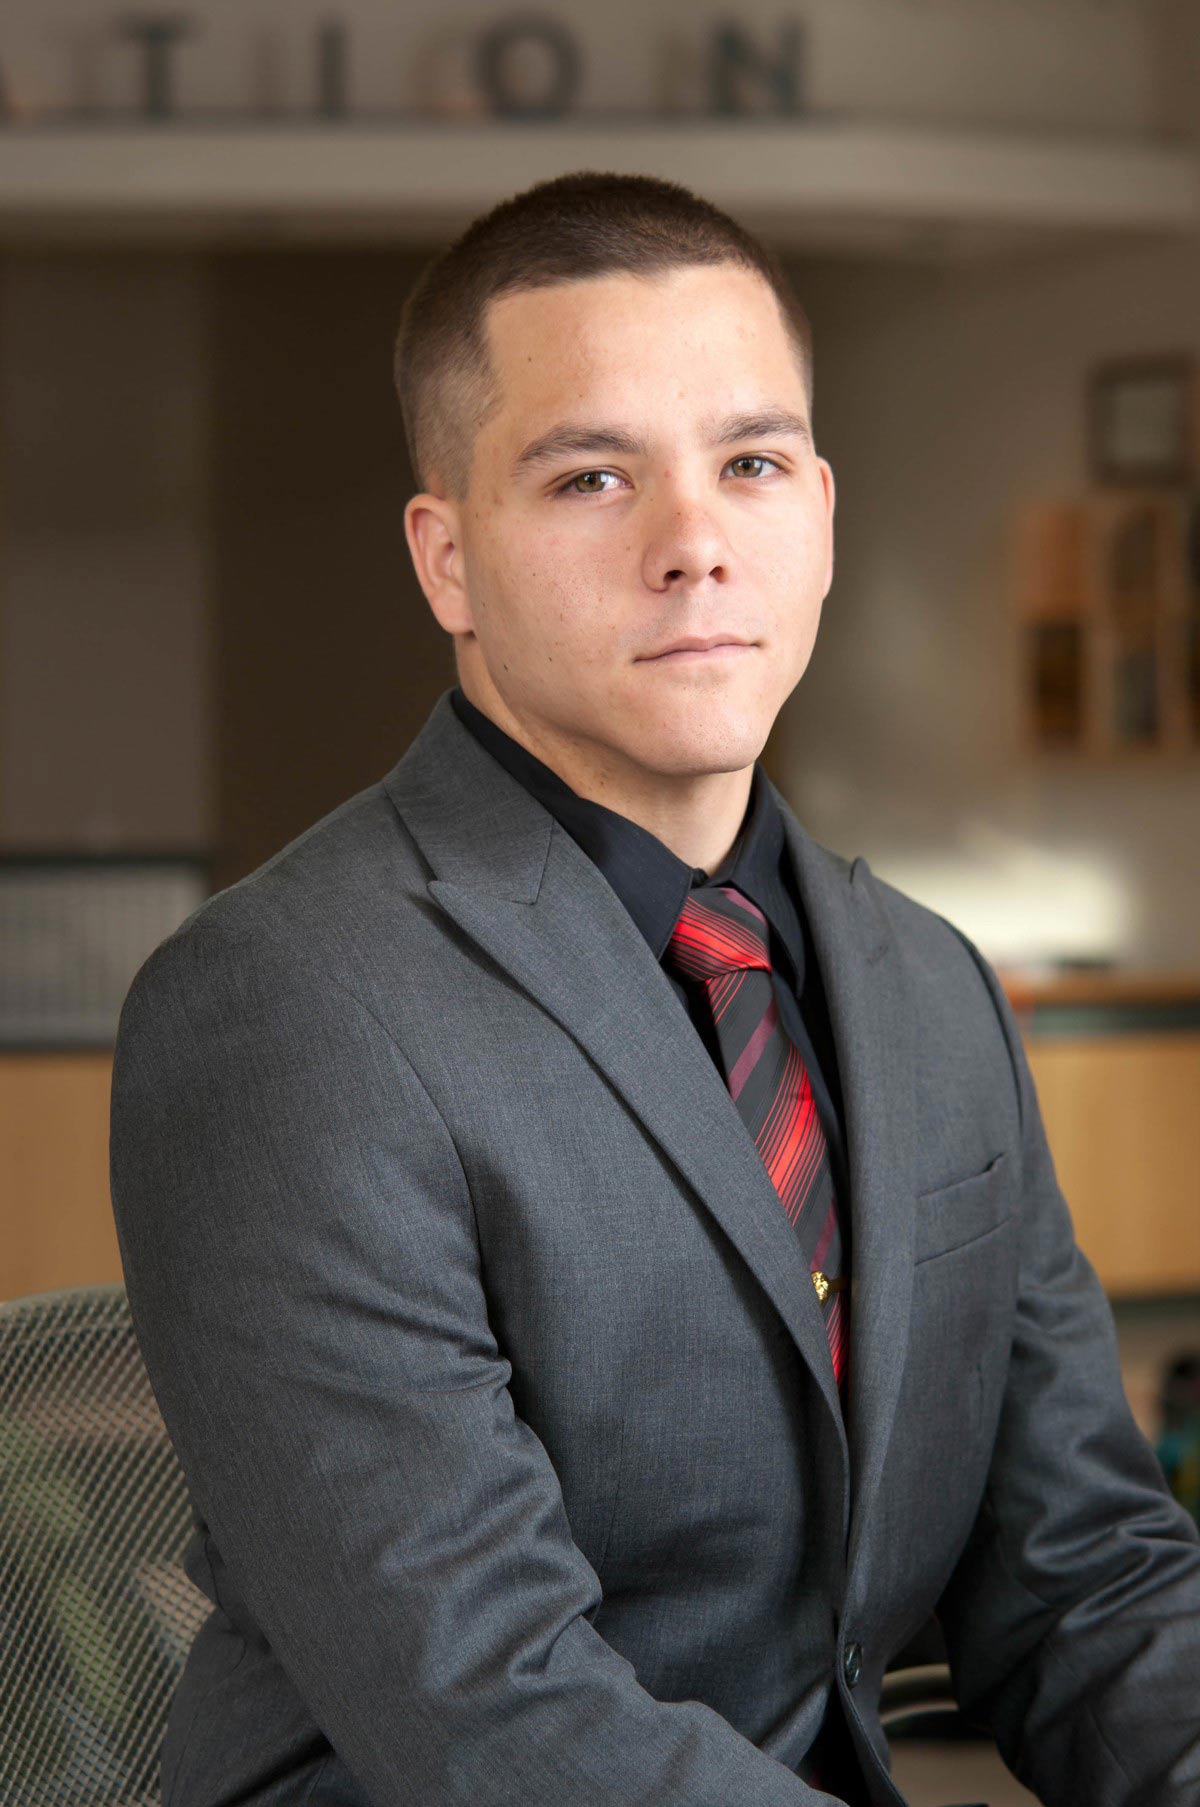 Alumnus Brett Travis, 2016 graduate in International Studies